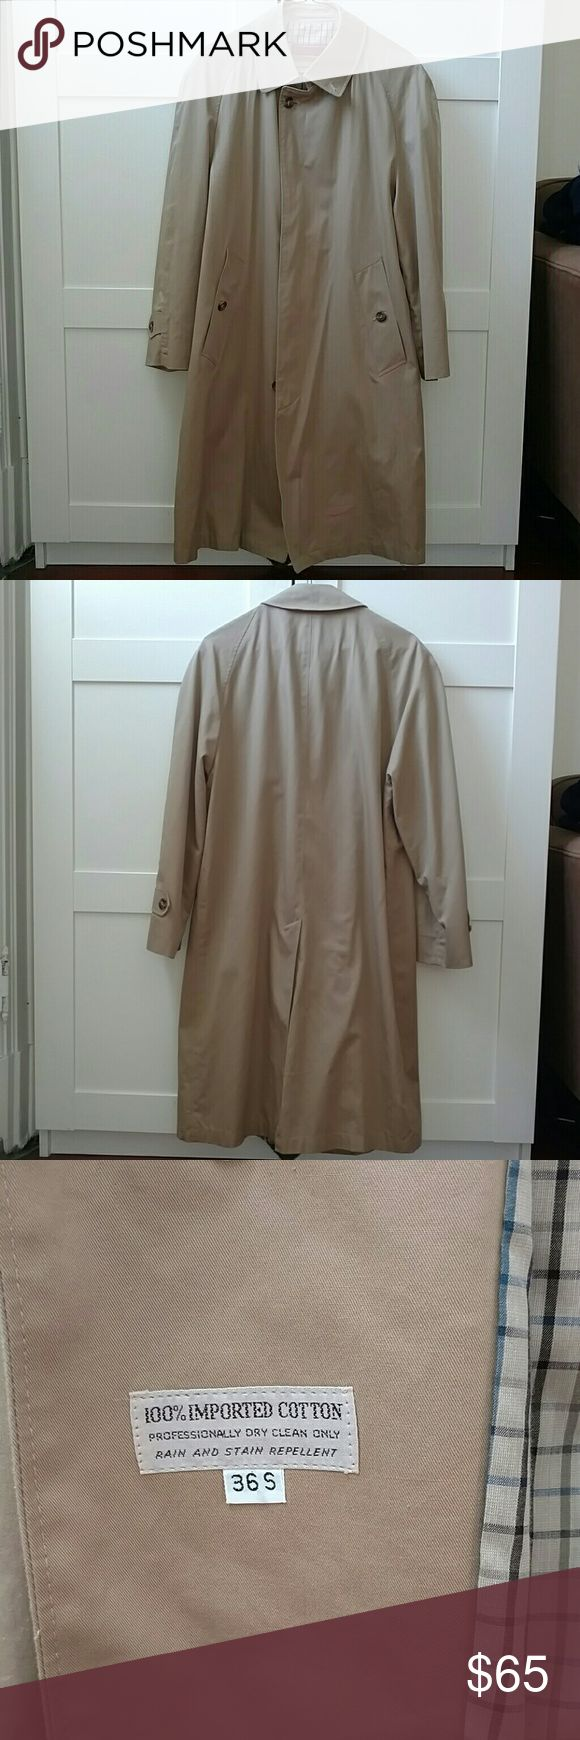 Classic khaki colored cotton rain overcoat 36S This vintage Gleneagles rain overcoat is 100% cotton with a cotton lining.  It has two exterior pockets and one pocket in the lining.  It is in great vintage condition with even the spare buttons intact.  There is one small light spot as indicated in the photo.  Men's size 36 S Vintage Jackets & Coats Trench Coats